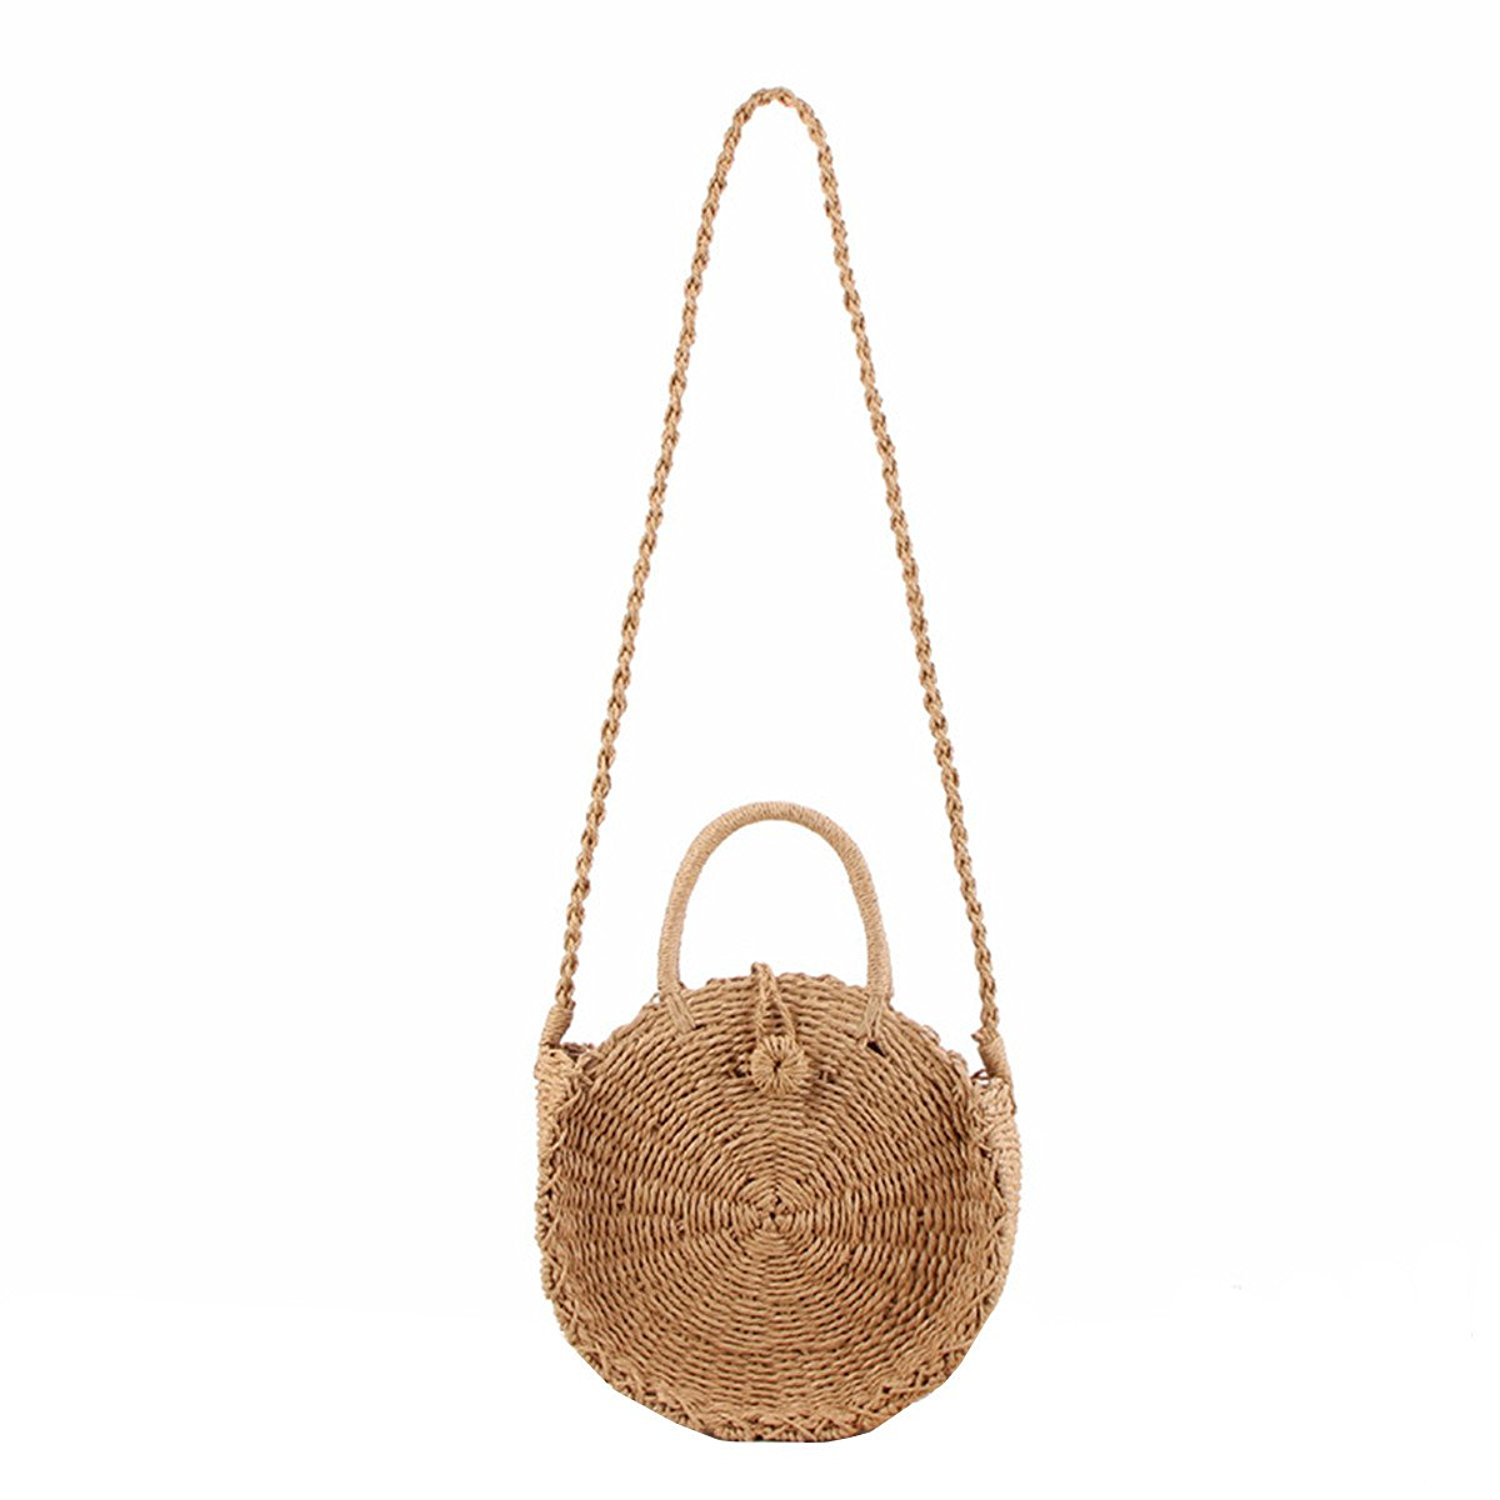 766b7e77e5df Get Quotations · Andear Womens Straw Woven Handbags Round Rattan Tote Bags  Shoulder Bags Beach Crossbody Bags